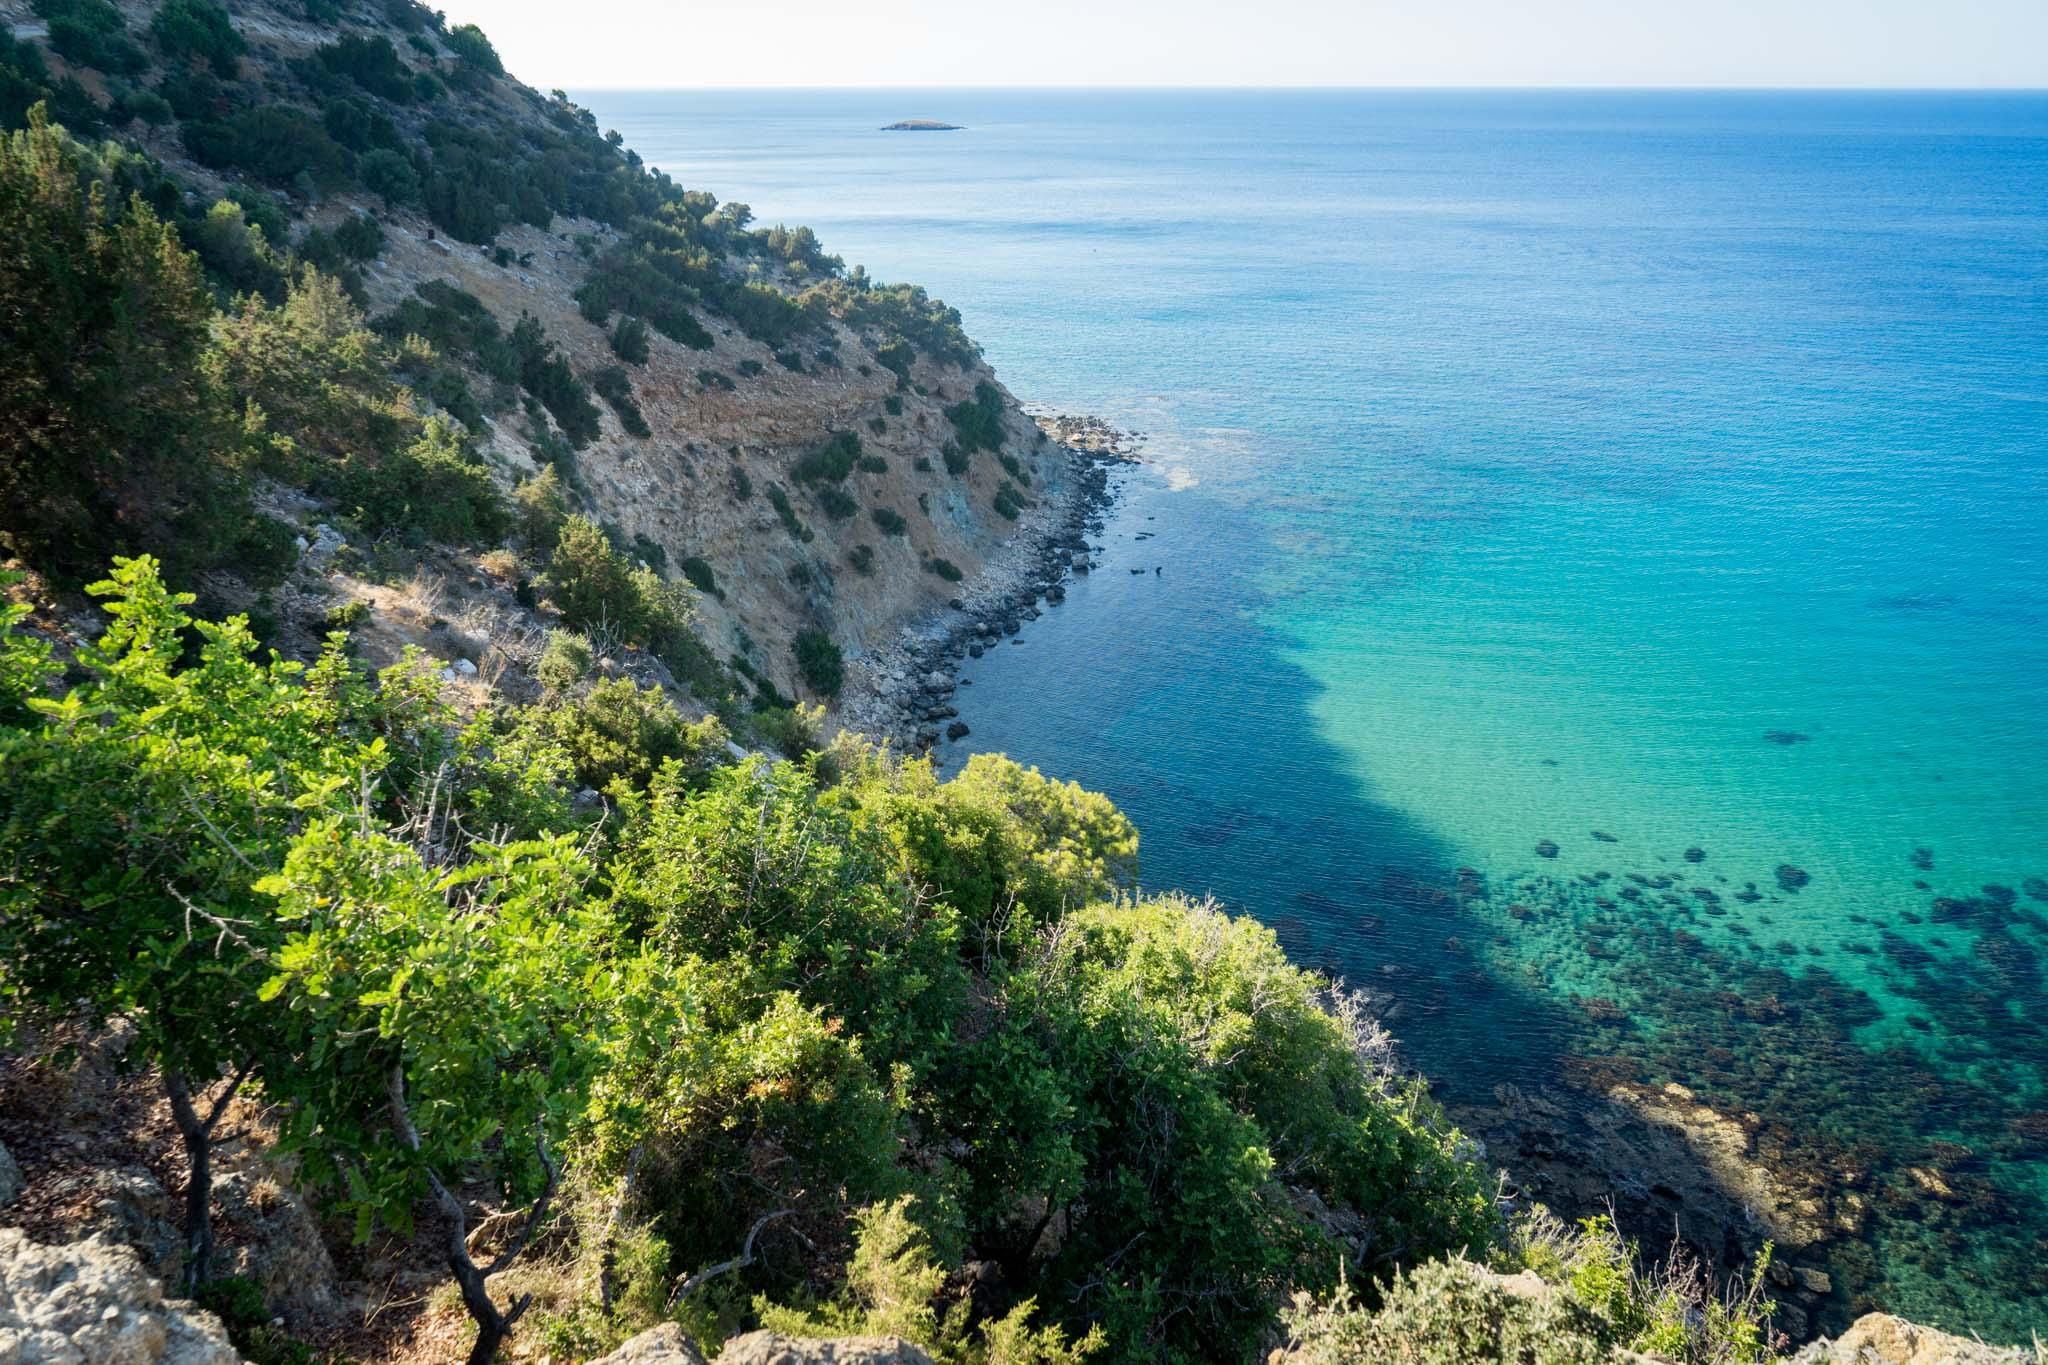 The footpath leading to the Aphrodite bath along the coast offers magnificent views of the sea. The coast is dotted with beaches, some of which have bathing areas. © Michael Turtle